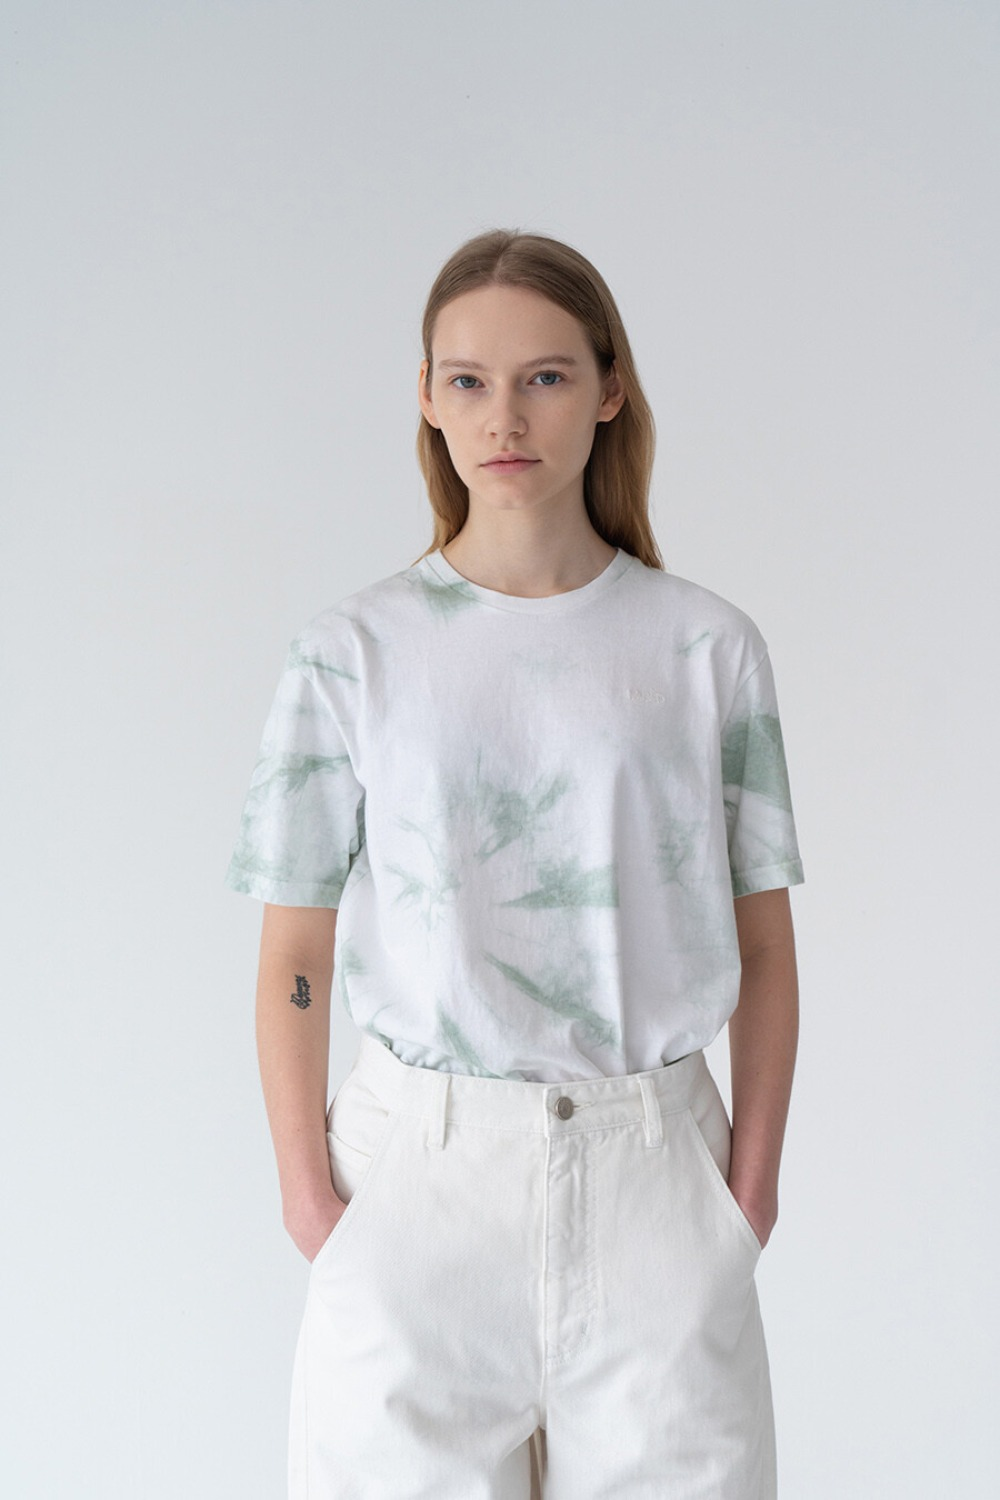 HAND TIE-DYE T-SHIRT WHITE+ MINT